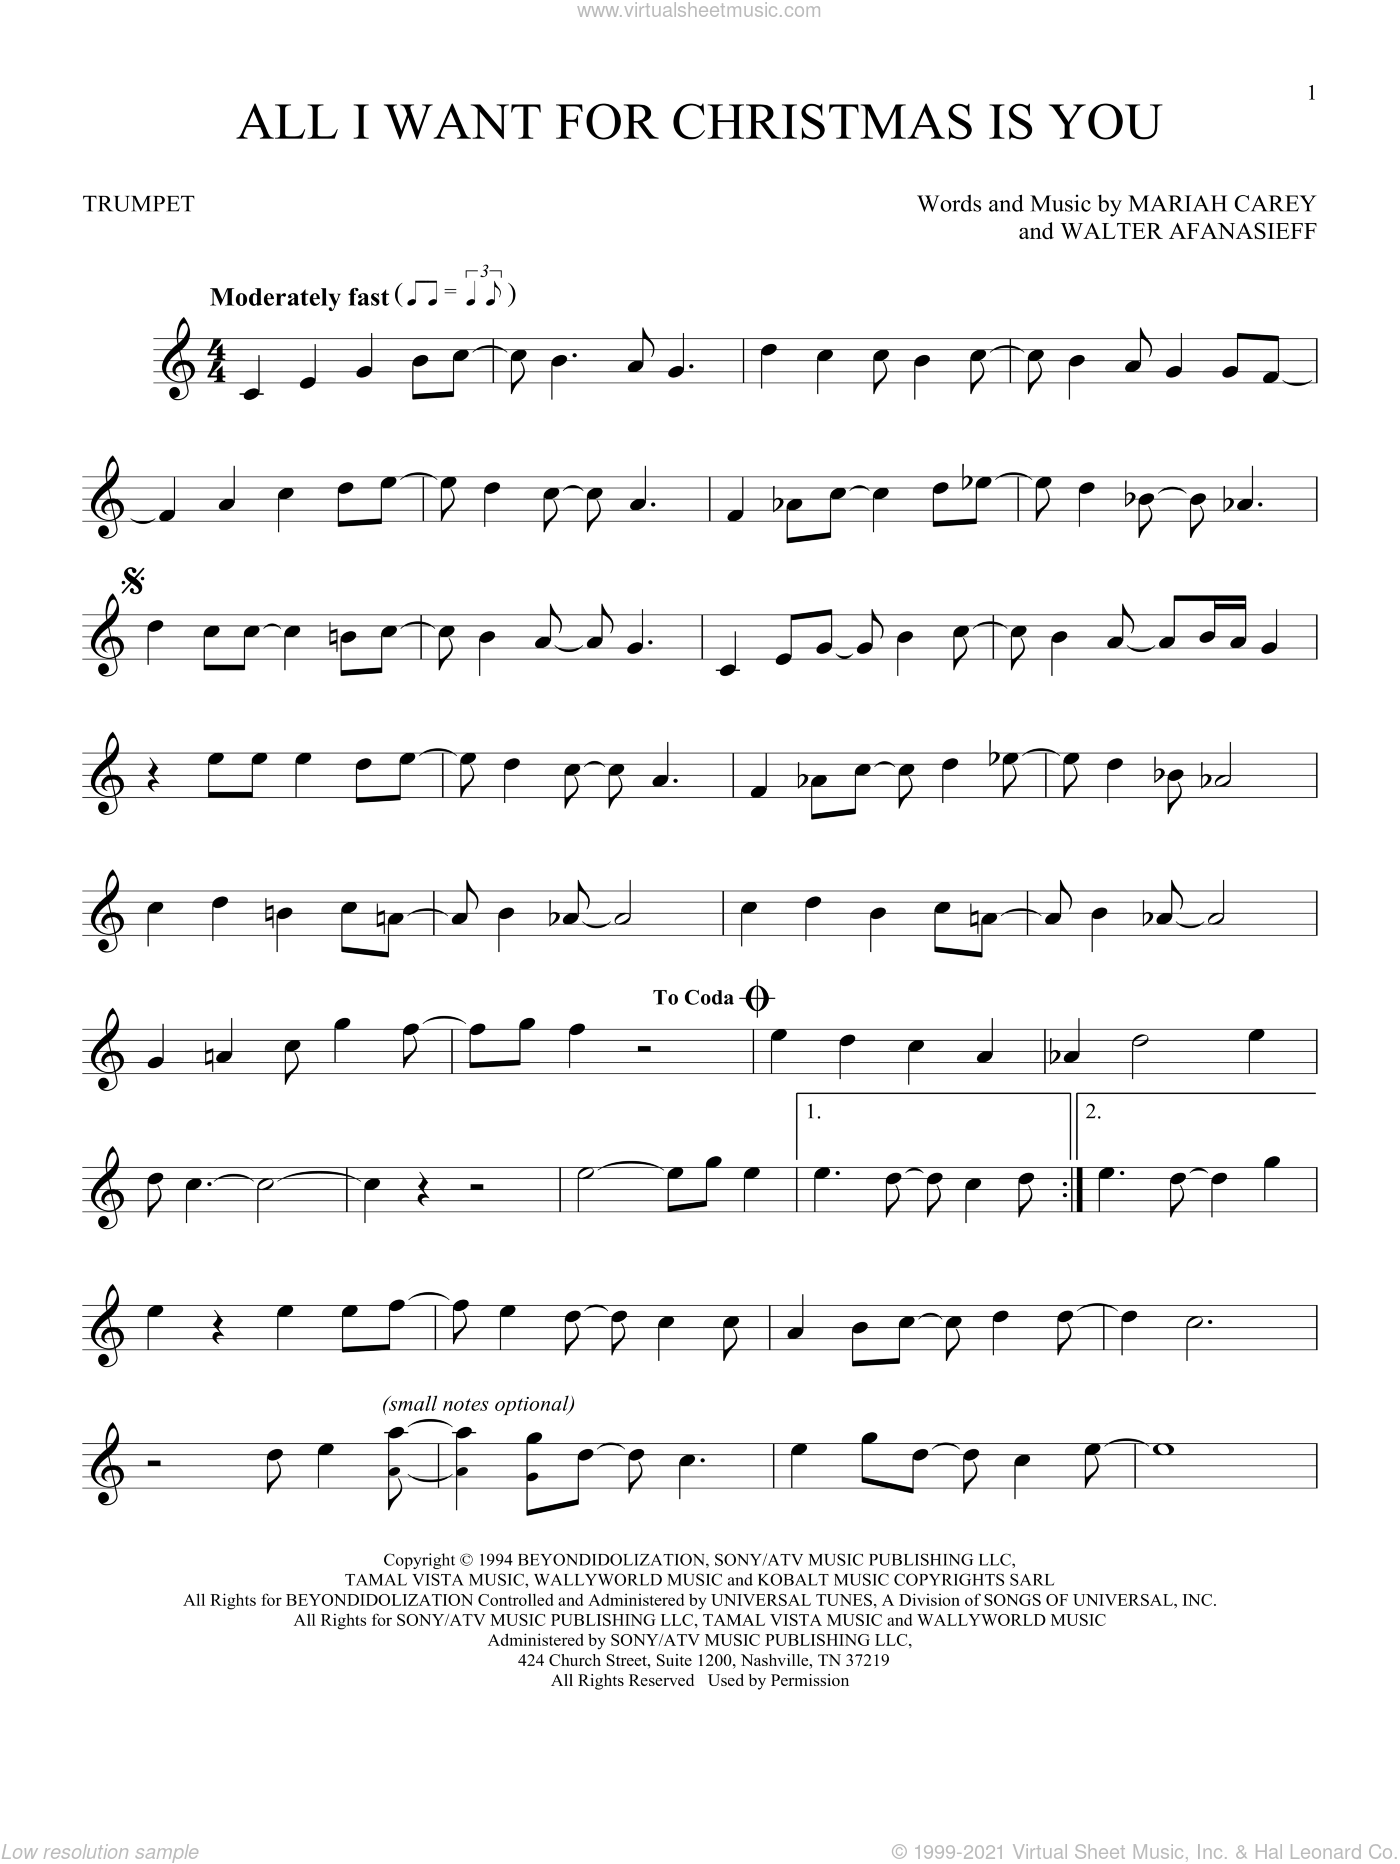 All I Want For Christmas Is You sheet music for trumpet solo by Mariah Carey and Walter Afanasieff, intermediate skill level